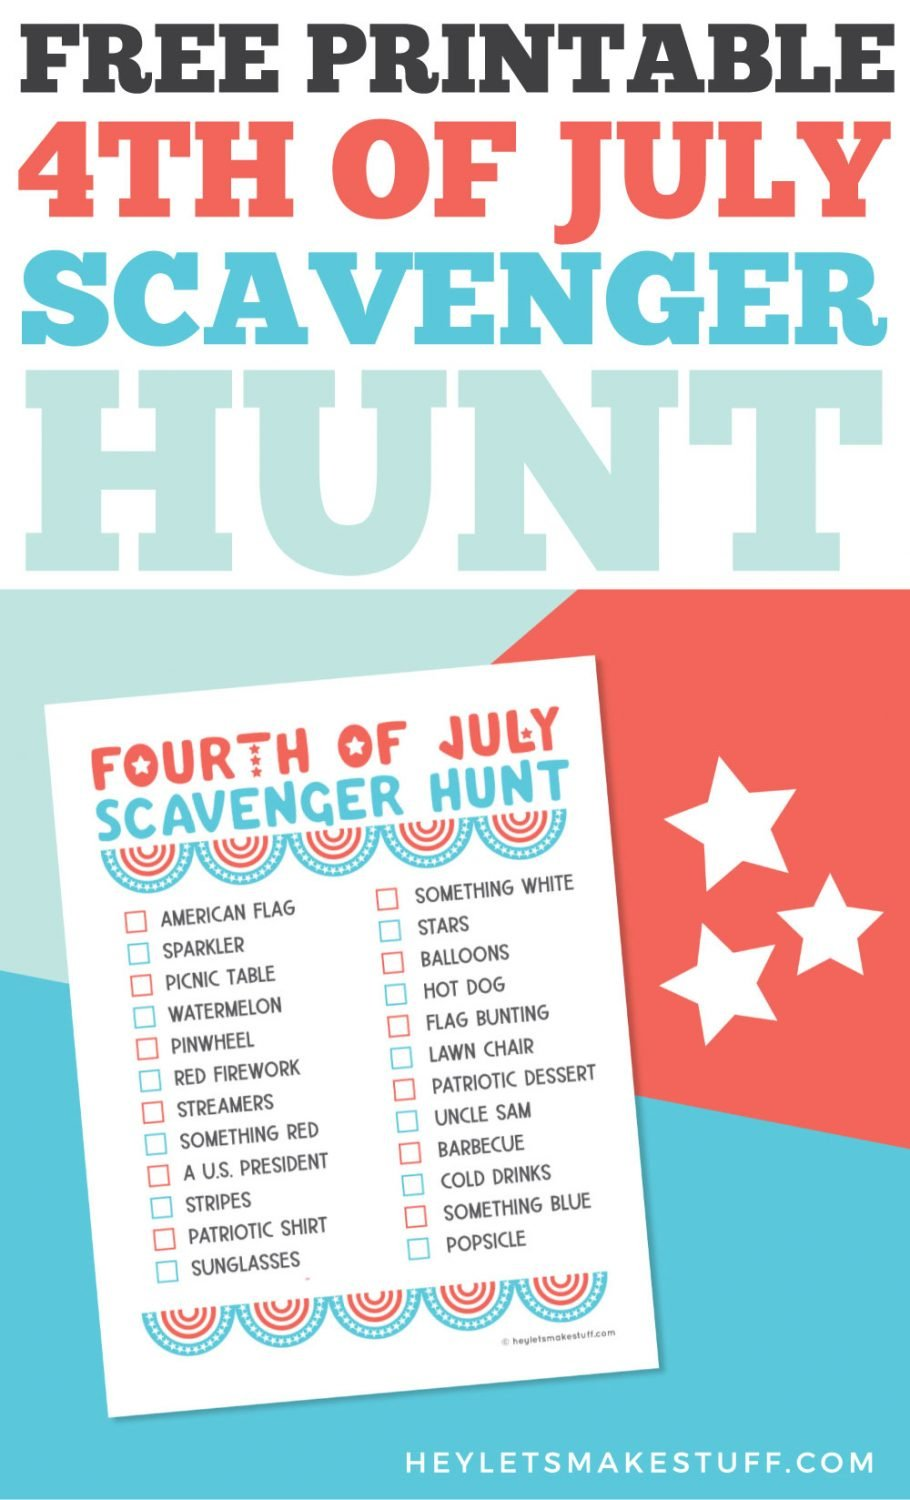 Free Printable 4th of July Scavenger Hunt pin image